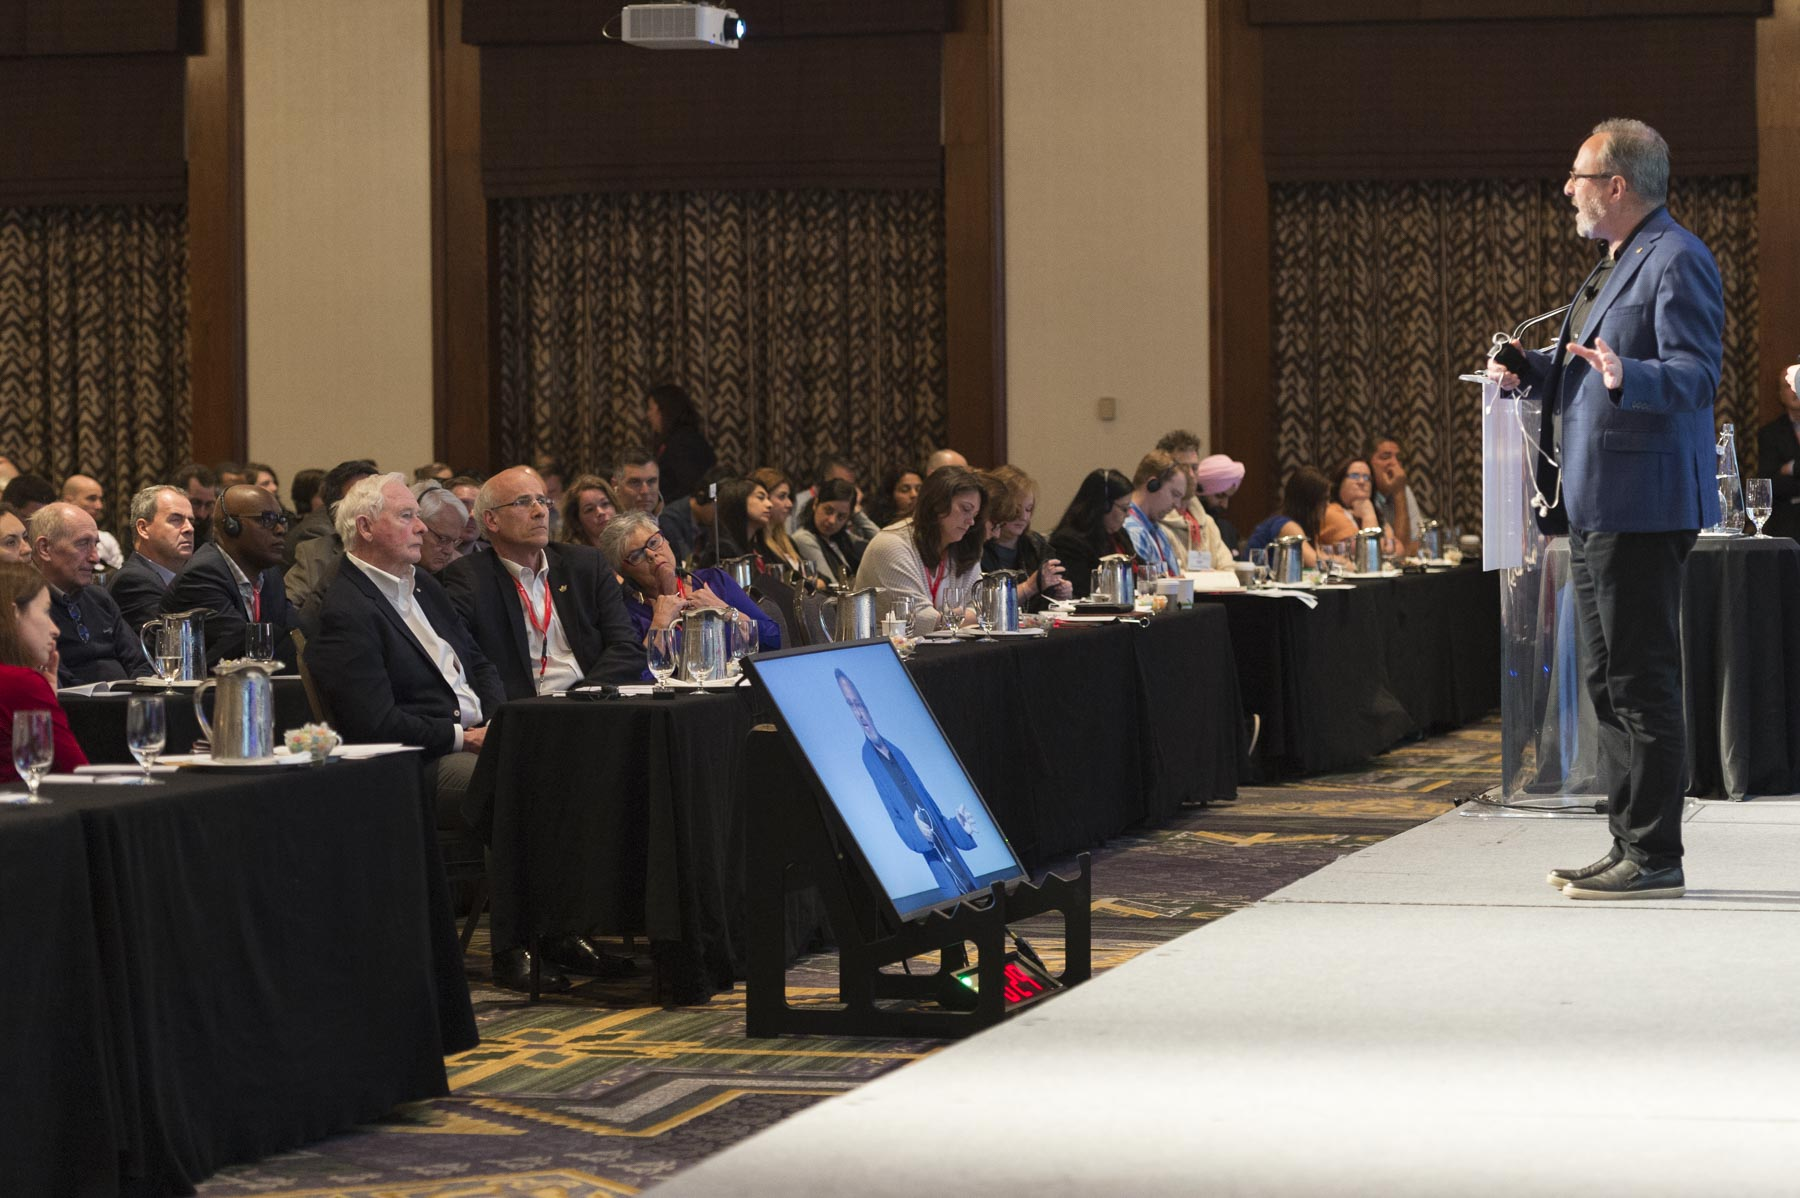 His Excellency attended the plenary sessions on the first day of the Governor General's Canadian Leadership Conference (GGCLC) in Whistler, le 3 juin 2017.